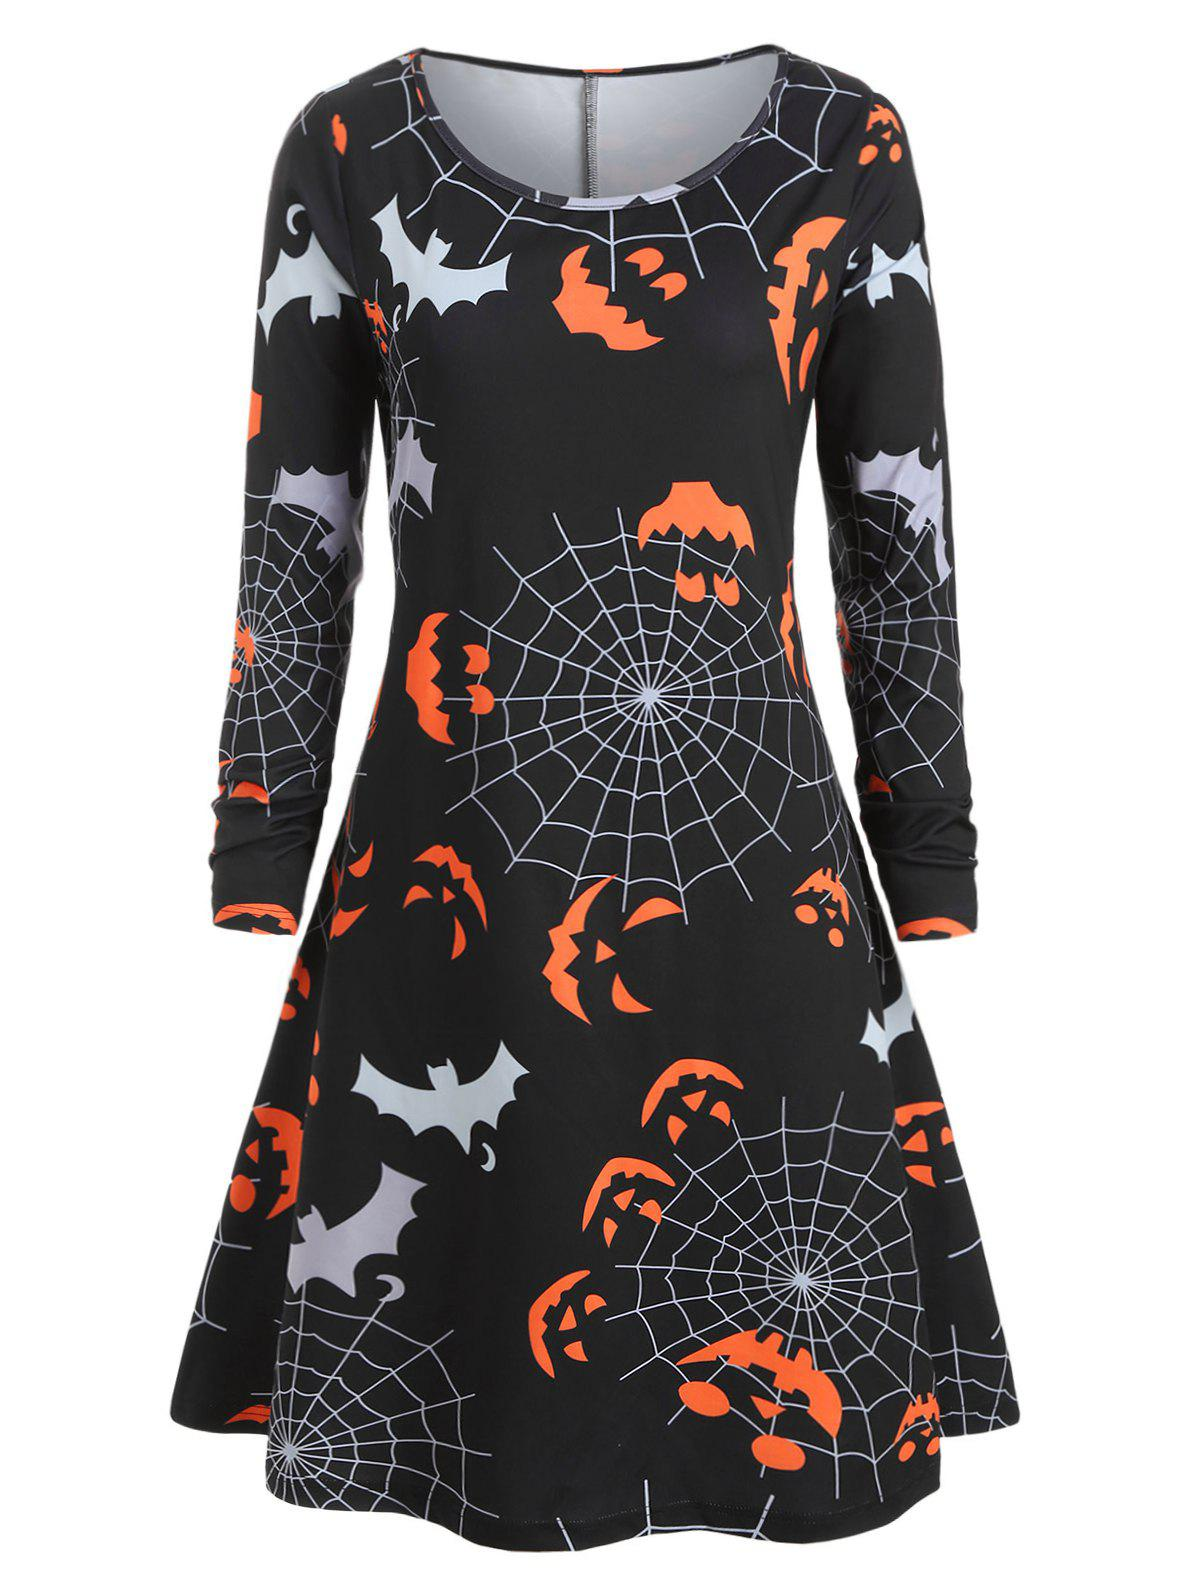 Plus Size Halloween Pumpkin Spider Web Print T Shirt Dress - BLACK L